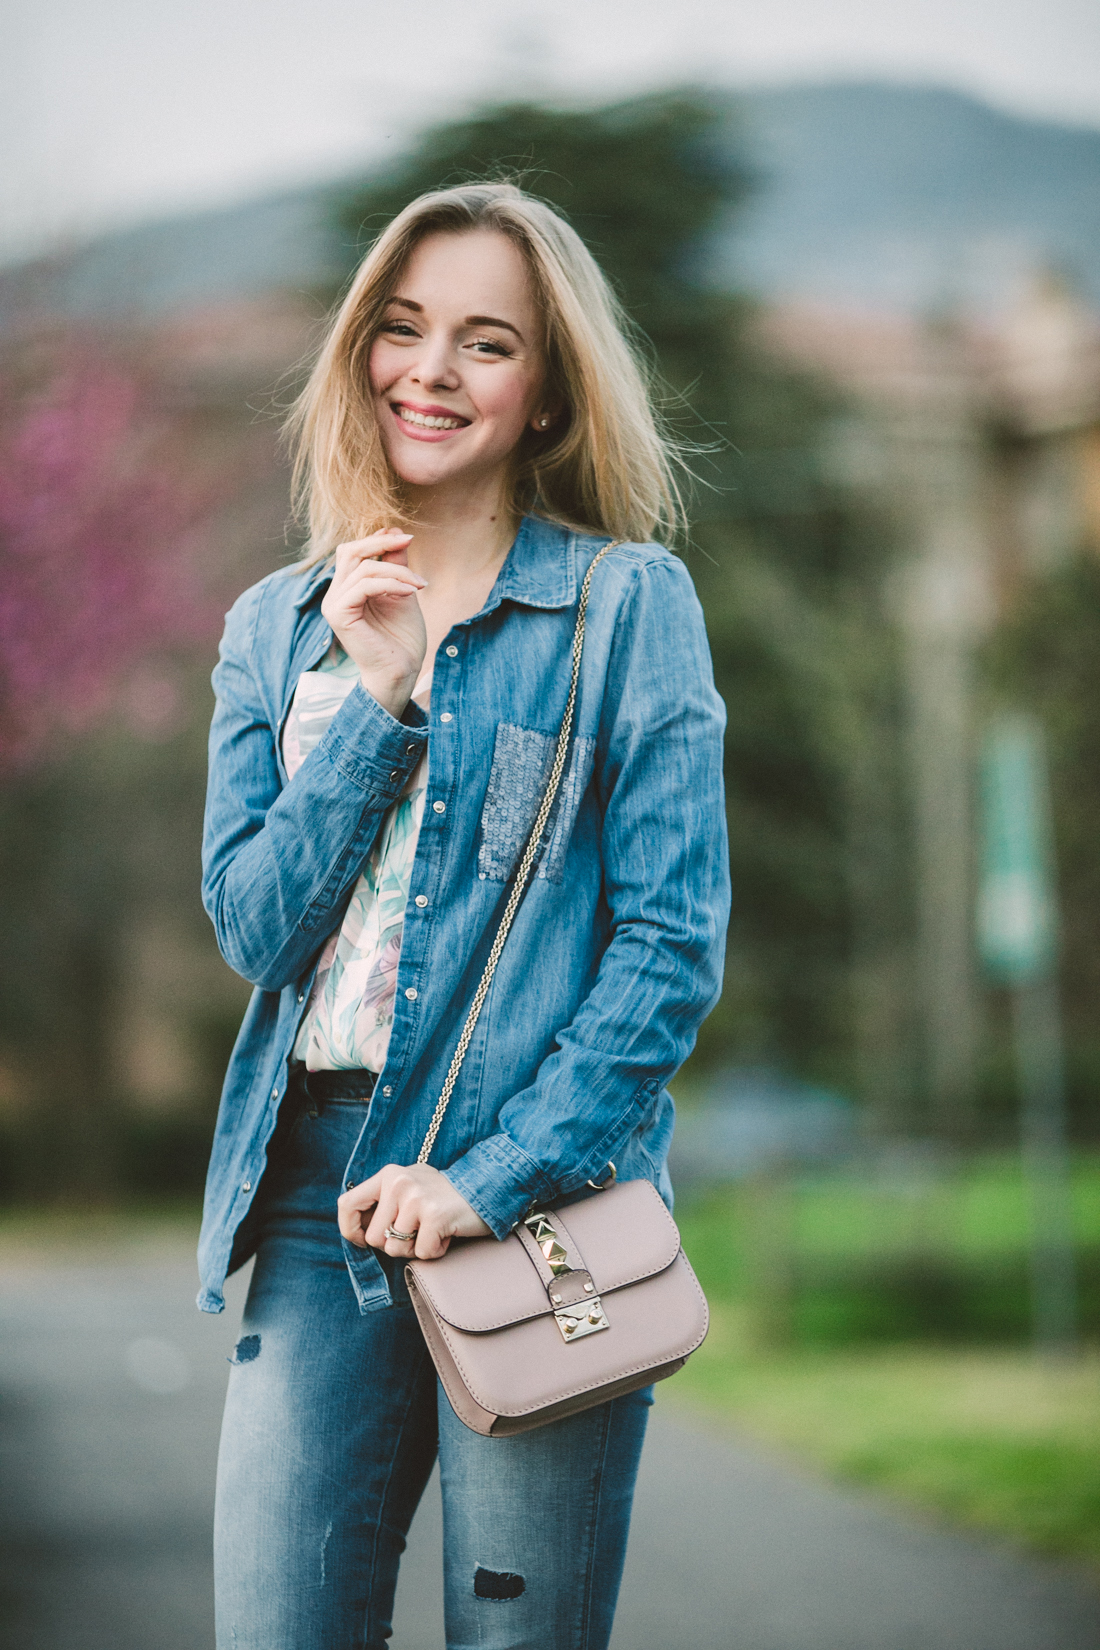 darya kamalova thecablook fashion lifestyle russian italian blogger wears total guess jeans myguess look with valentino rockstud glamrock cipria pale rose bag-4648